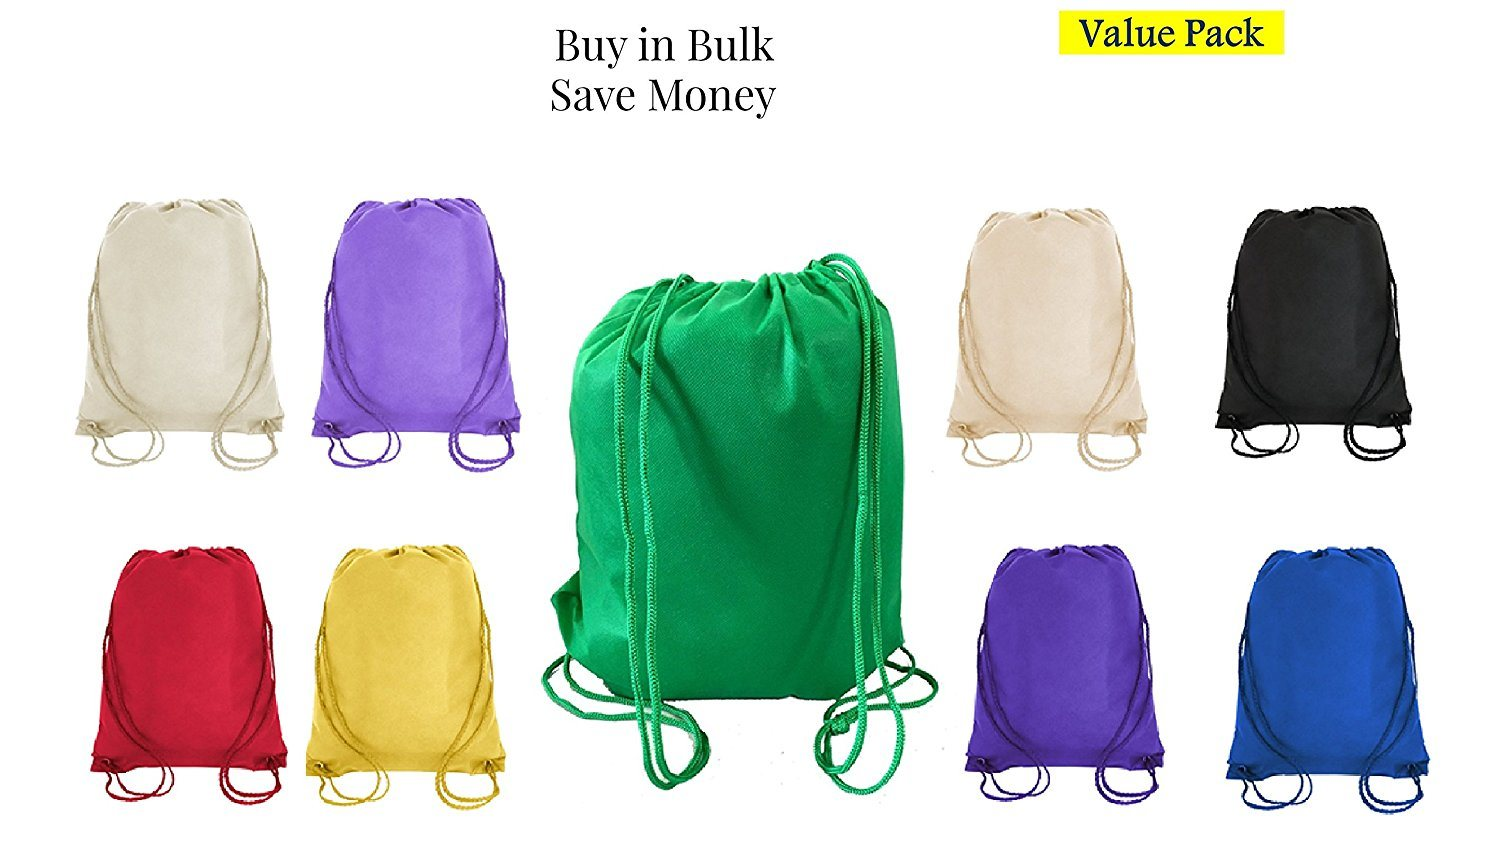 d2a0d59b3814 China Mix Color Drawstring Bags, Small Size Junior Cinch Packs, Non ...